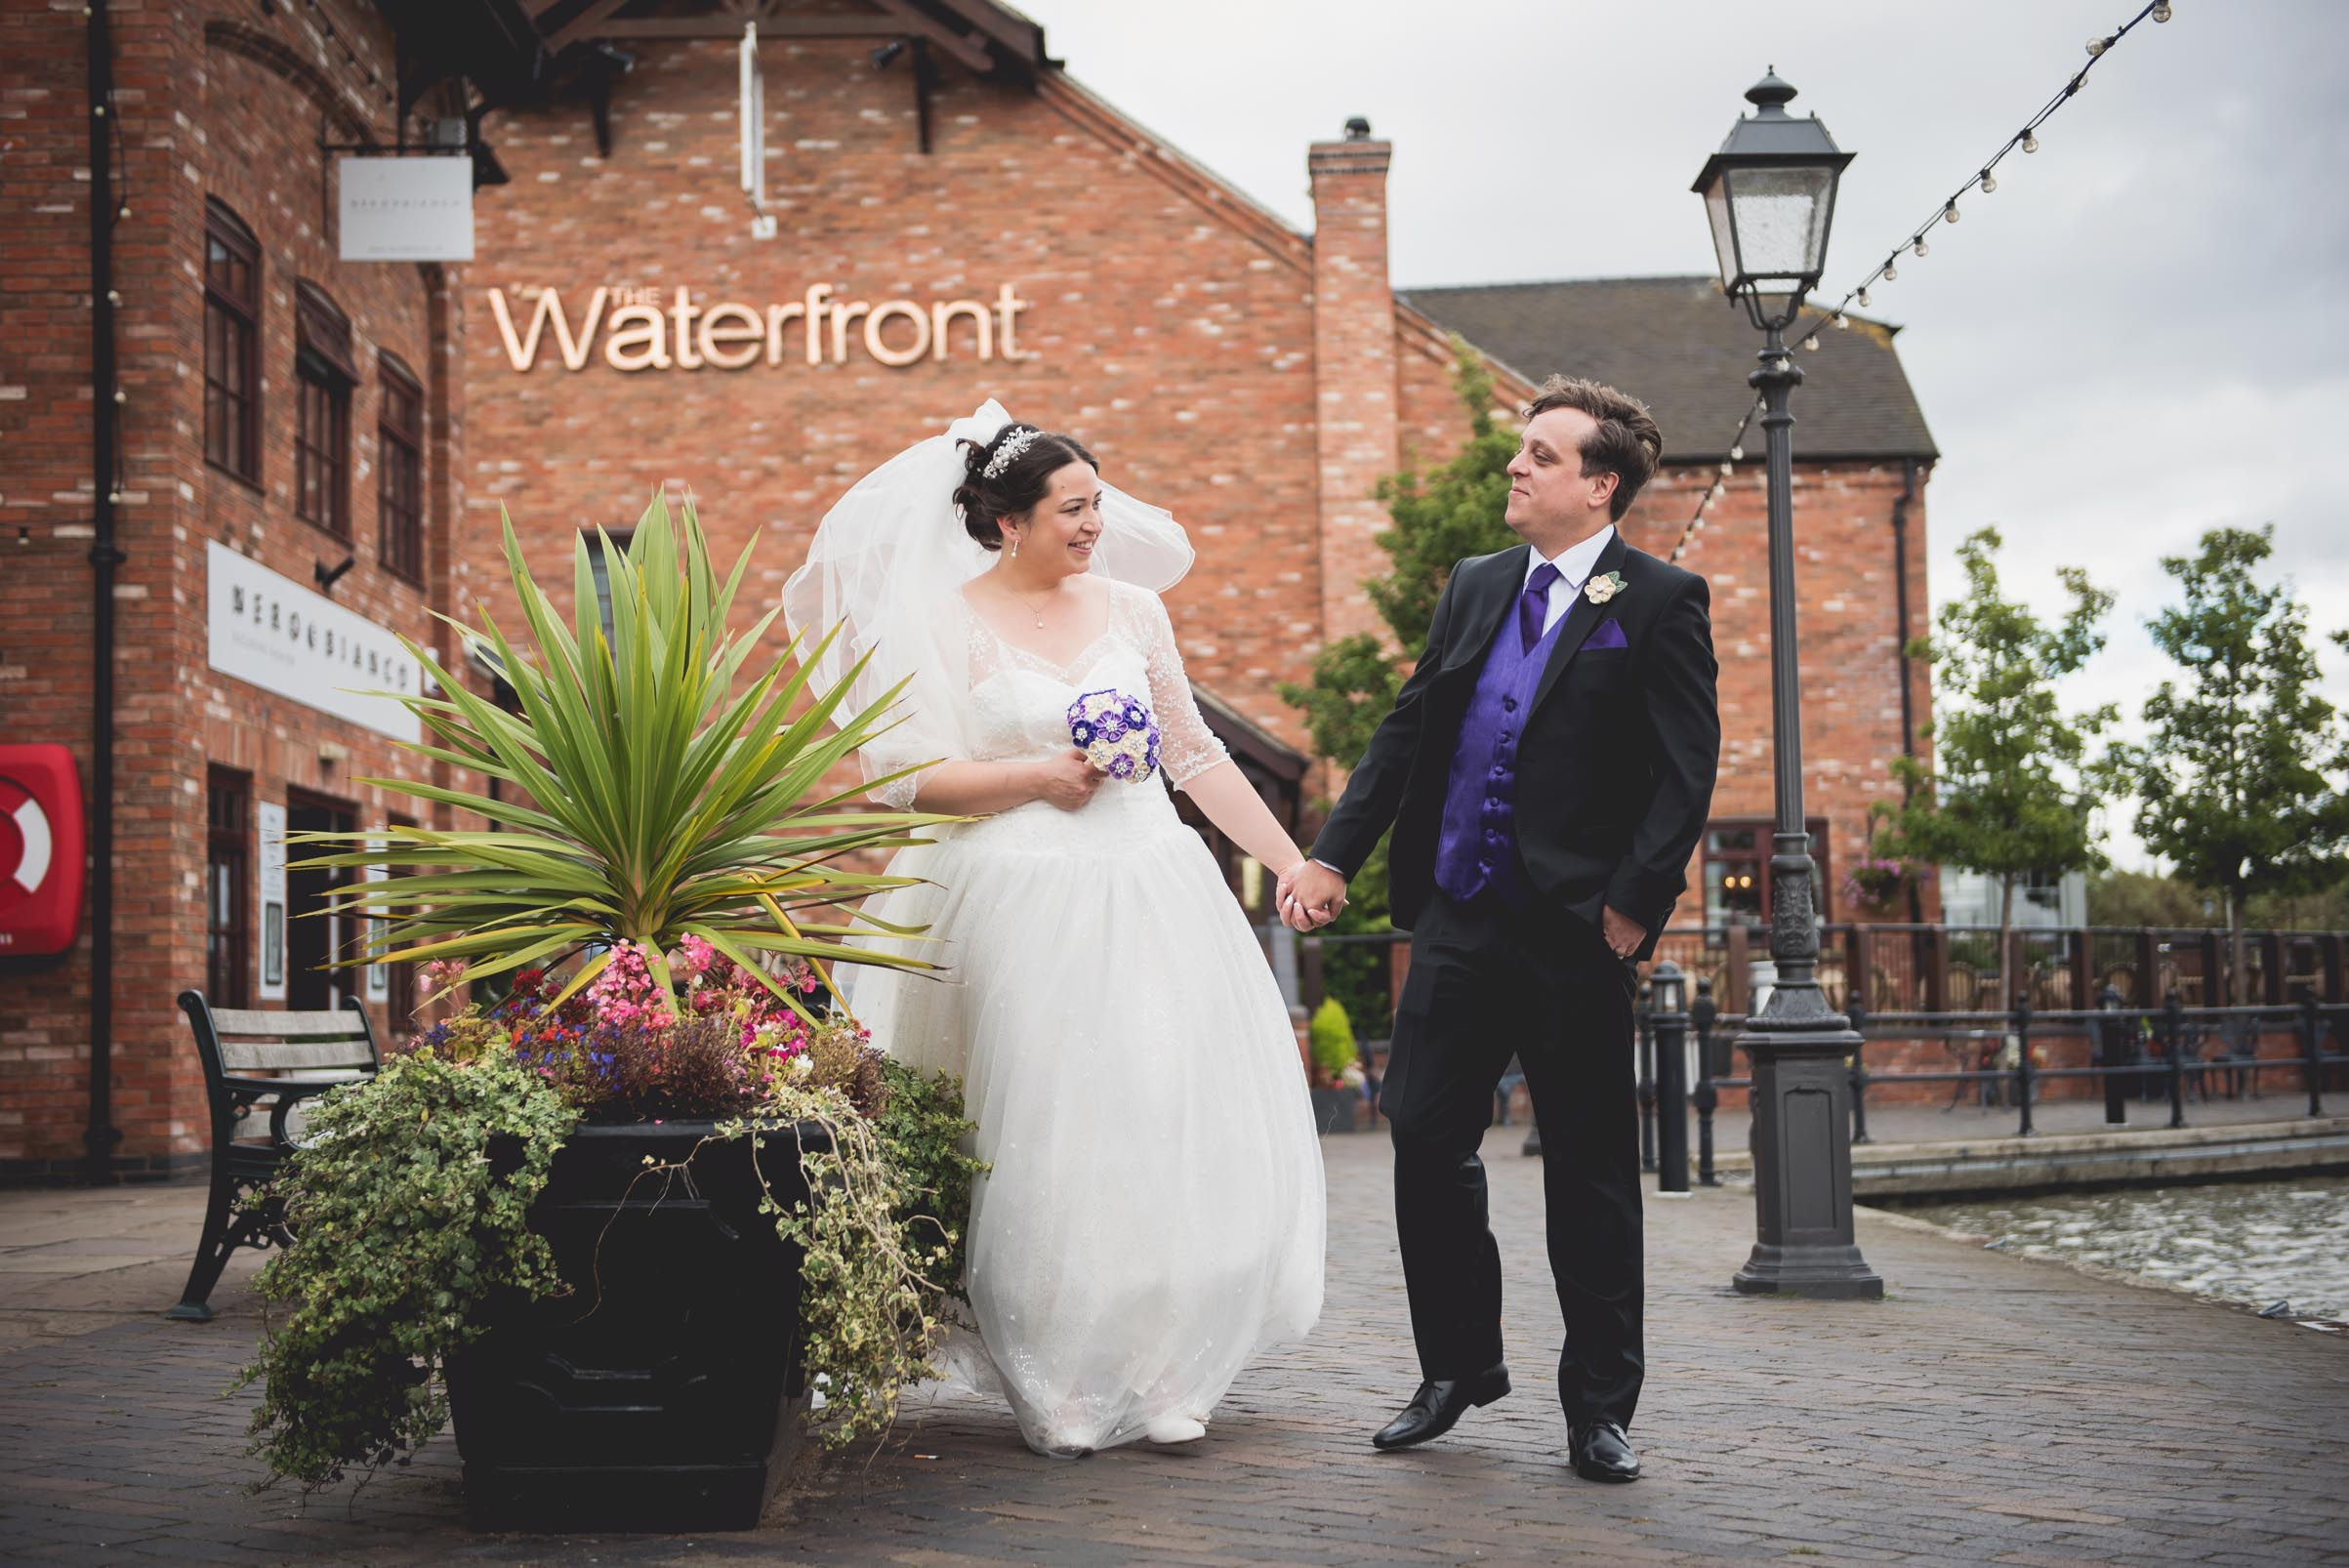 The-waterfront-wedding-crows-nest-barton-marina-95.jpg